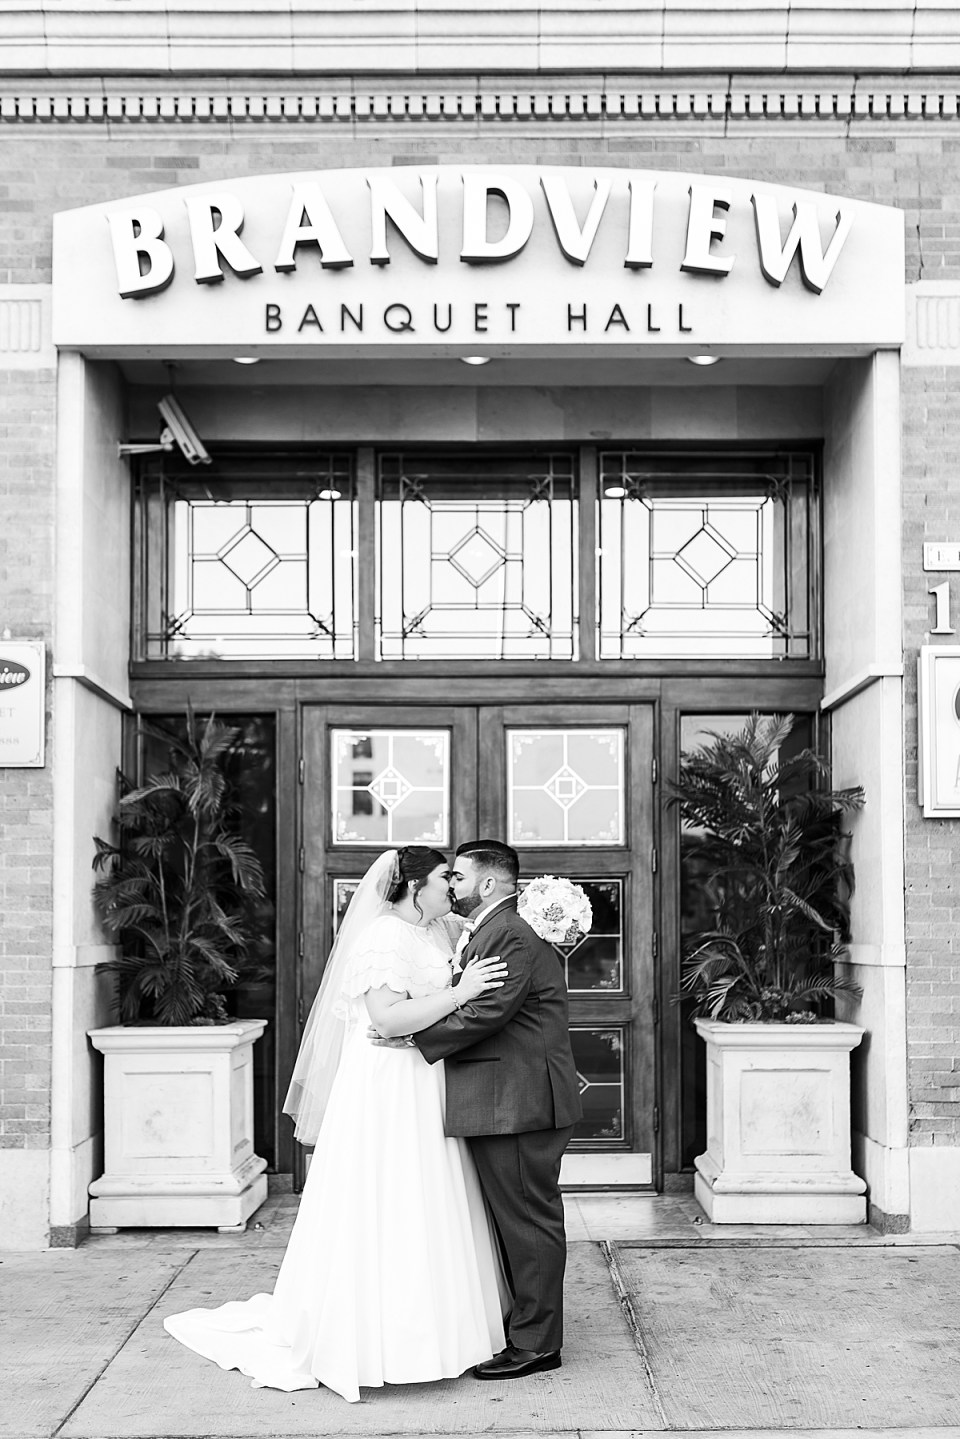 Betsy & Michael holding each other close and sharing a kiss in front of their wedding venue.